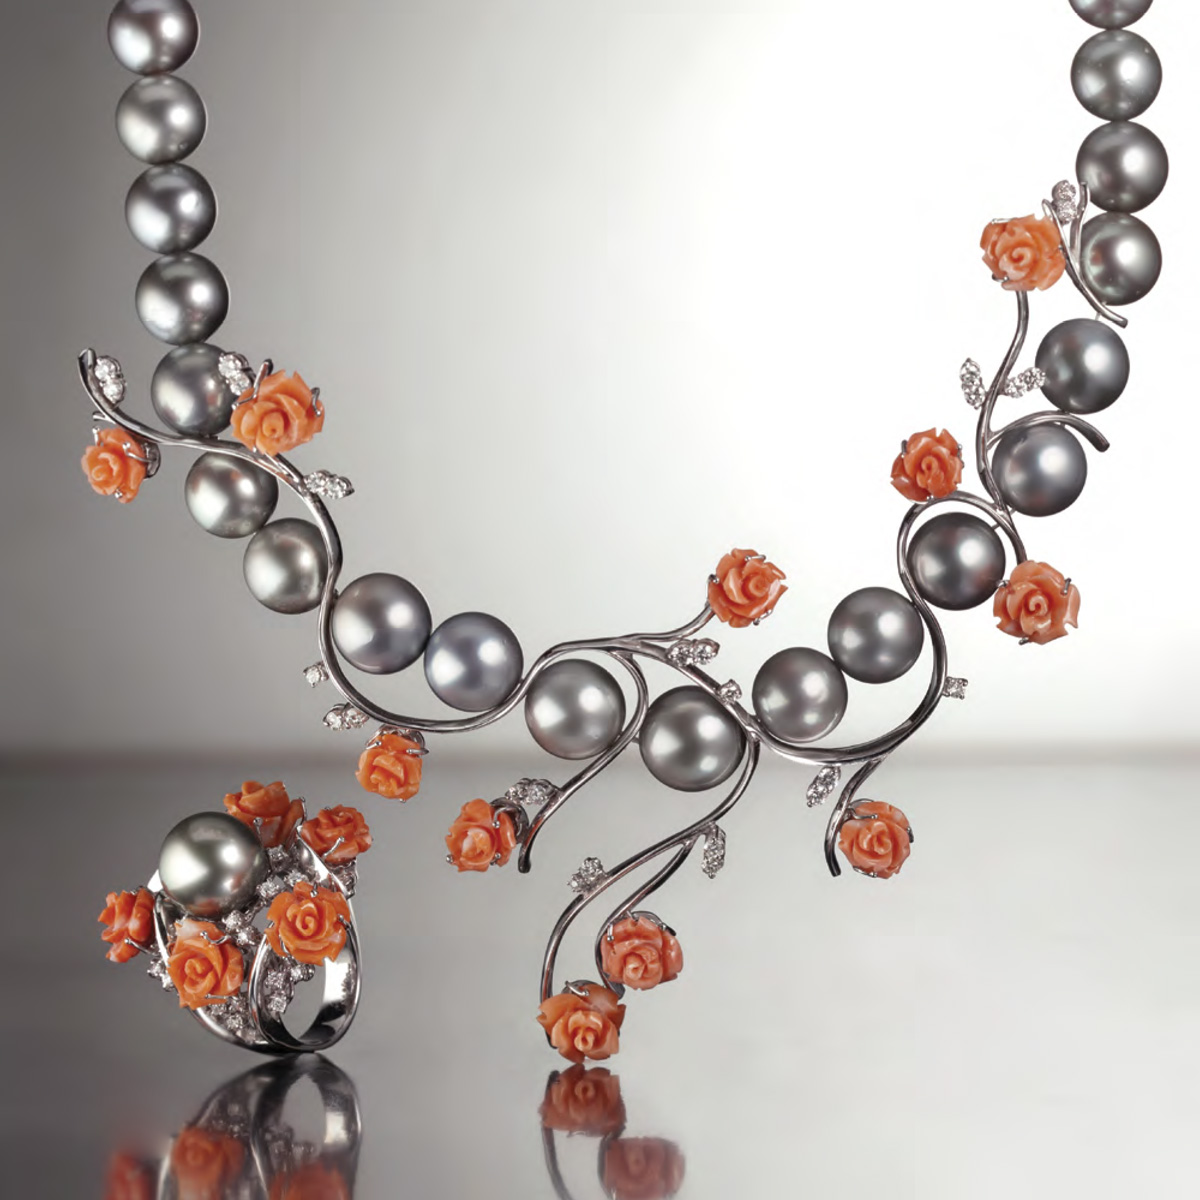 Corallo e Perle Tahiti - Coral and Pearls